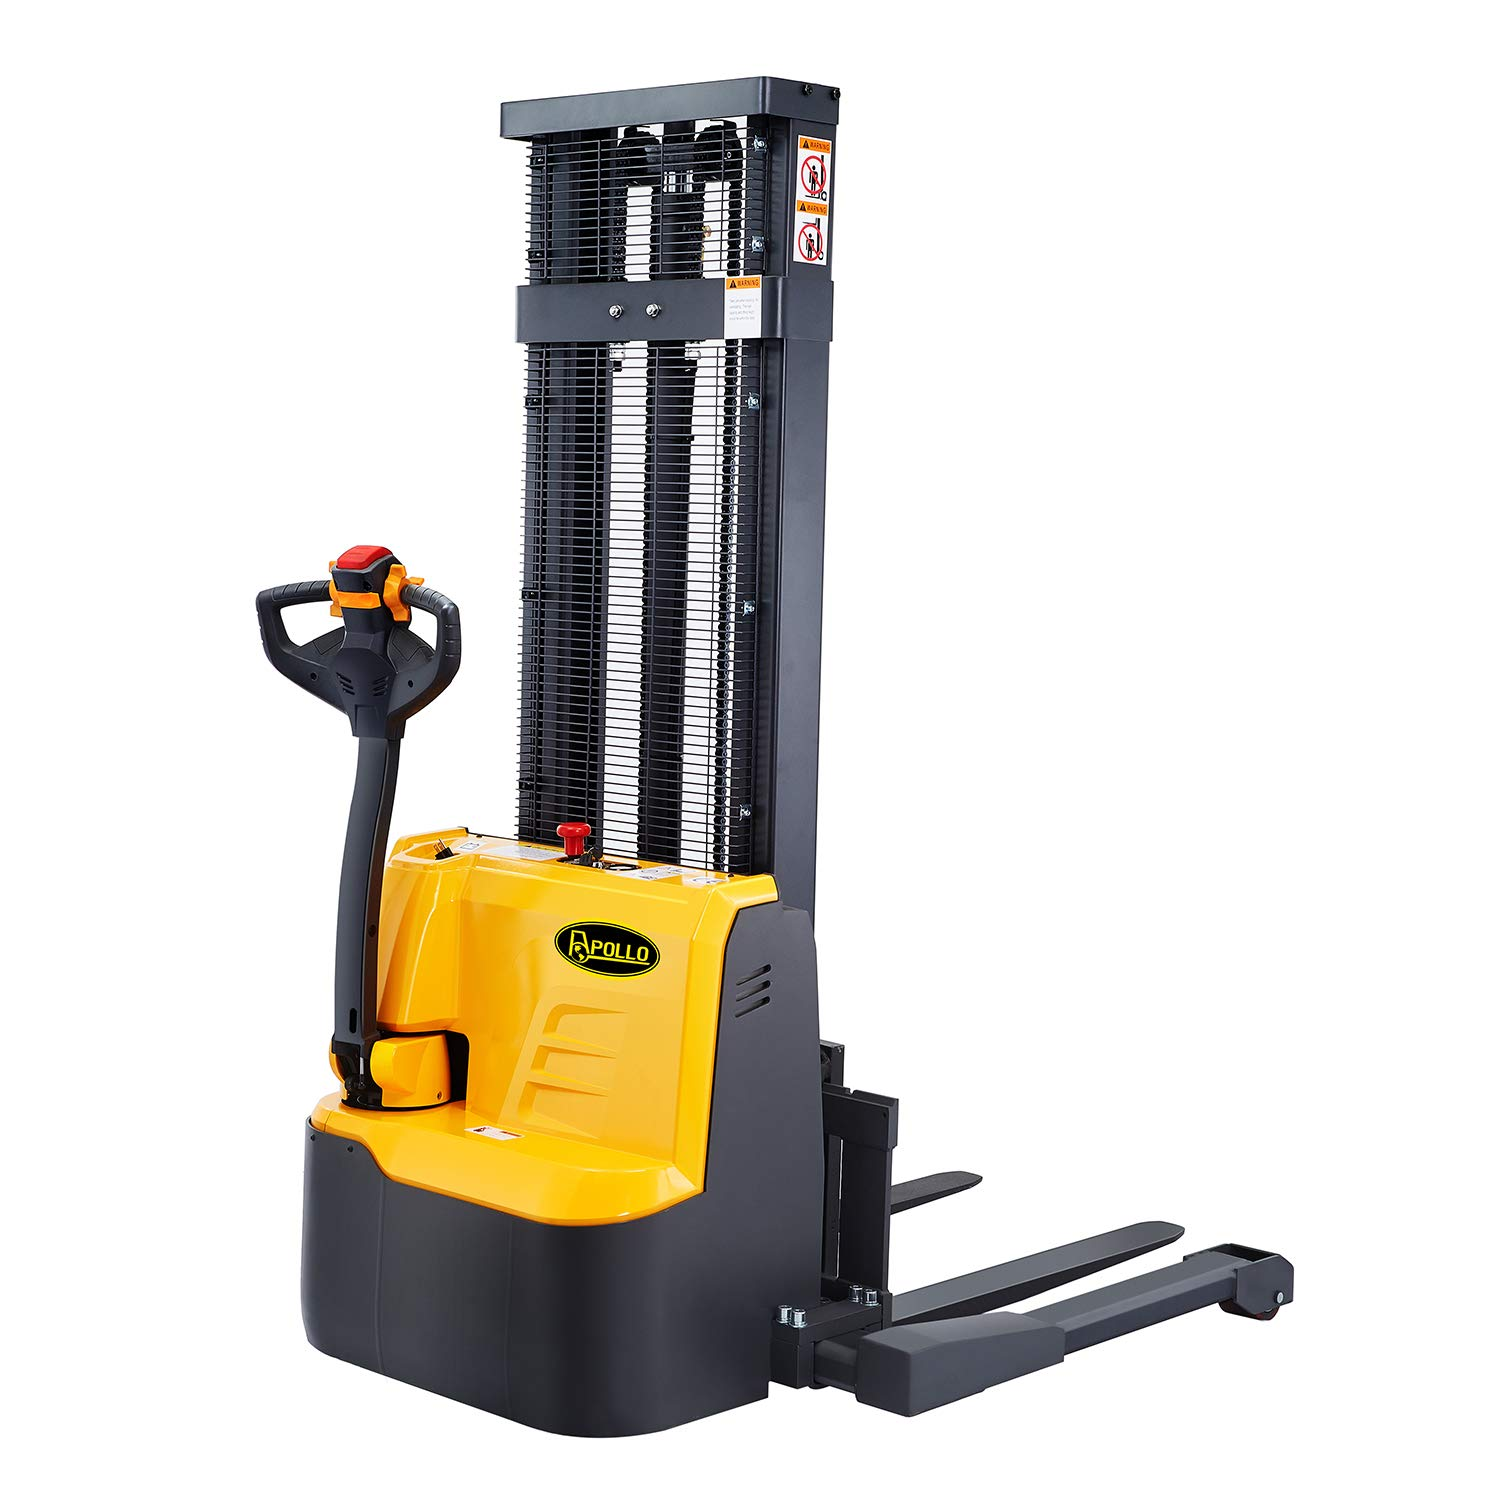 118 Lifting|Straddle Legs|Adj ApolloLift Semi-Electric Stacker Forks|Material Lift 3300lbs